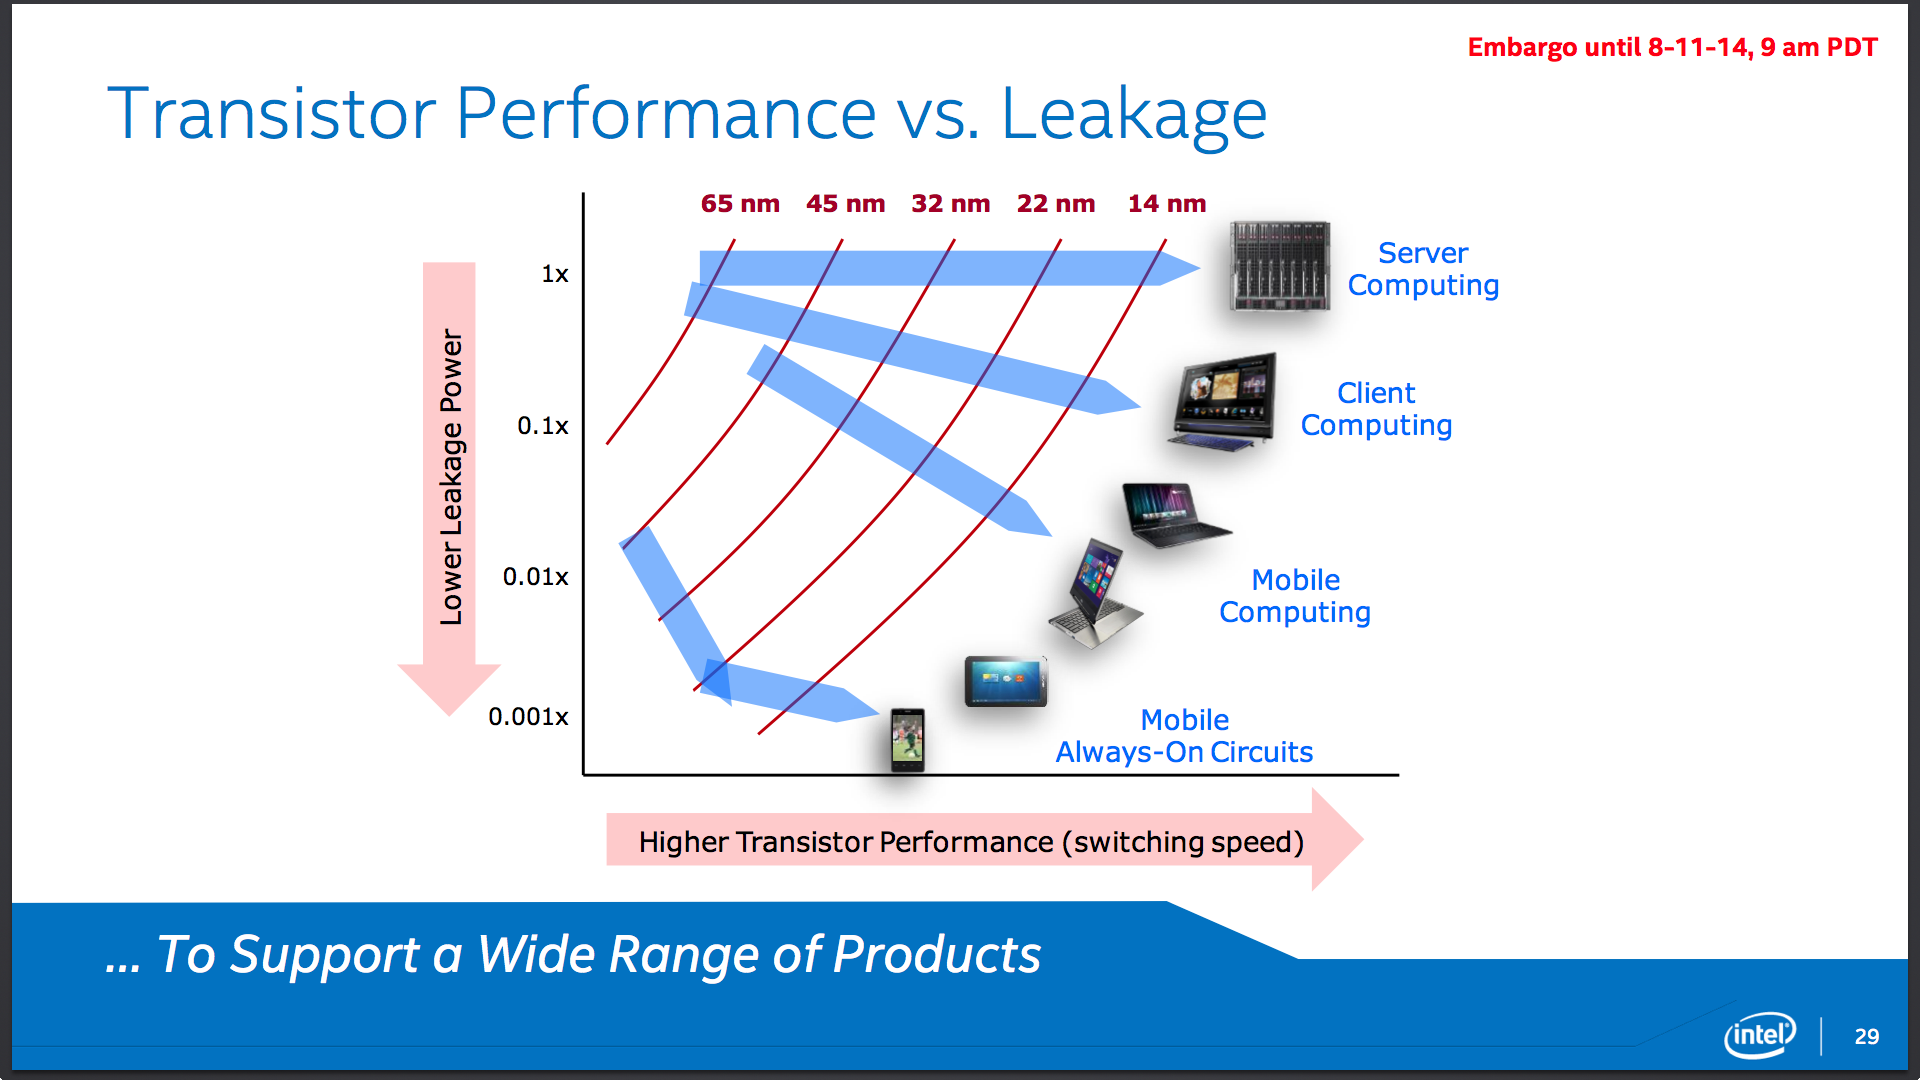 Like Haswell, Broadwell will eventually span across Intel's entire range of products, from slower but more battery-friendly chips like the Core M that can lower power usage to near-Atom levels, to higher-end chips like Core i7 and Xeon desktop and server parts.